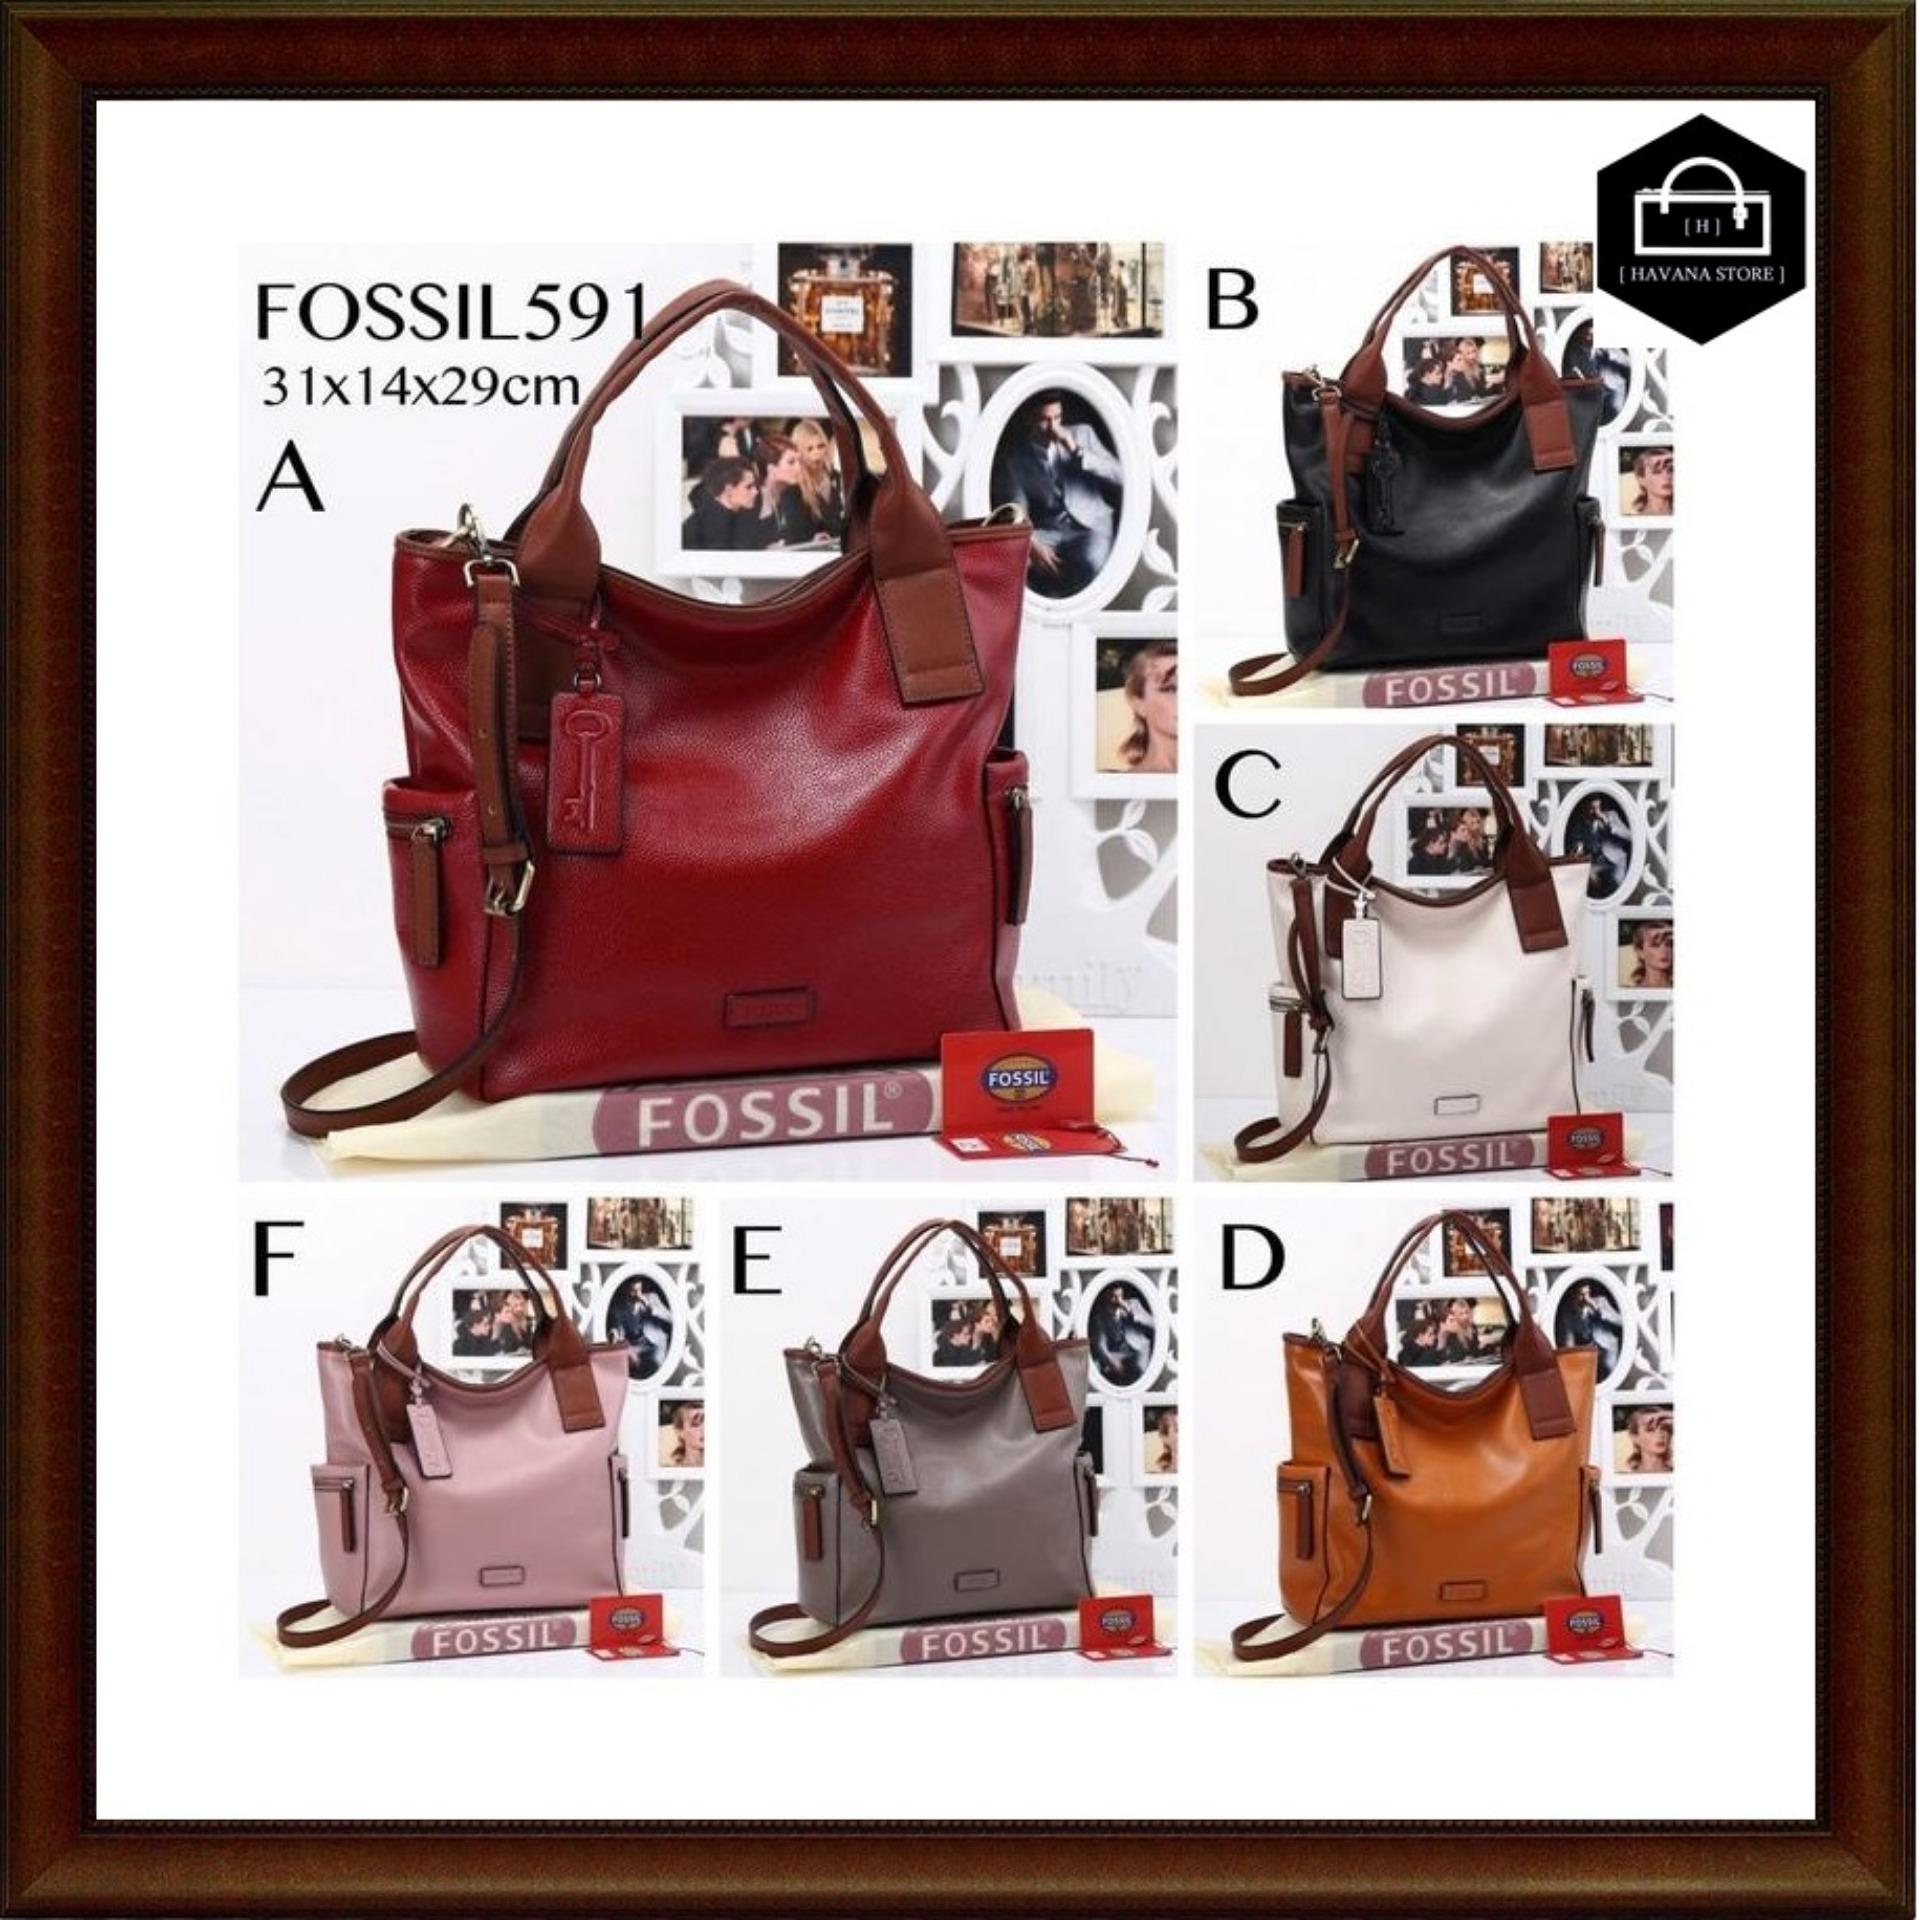 Fossil Emerson Large Wine Multi Zb6957 Multicolor Daftar Harga Rachel Tote Red Zb 6818995 Rp 329000 Tas Fossill